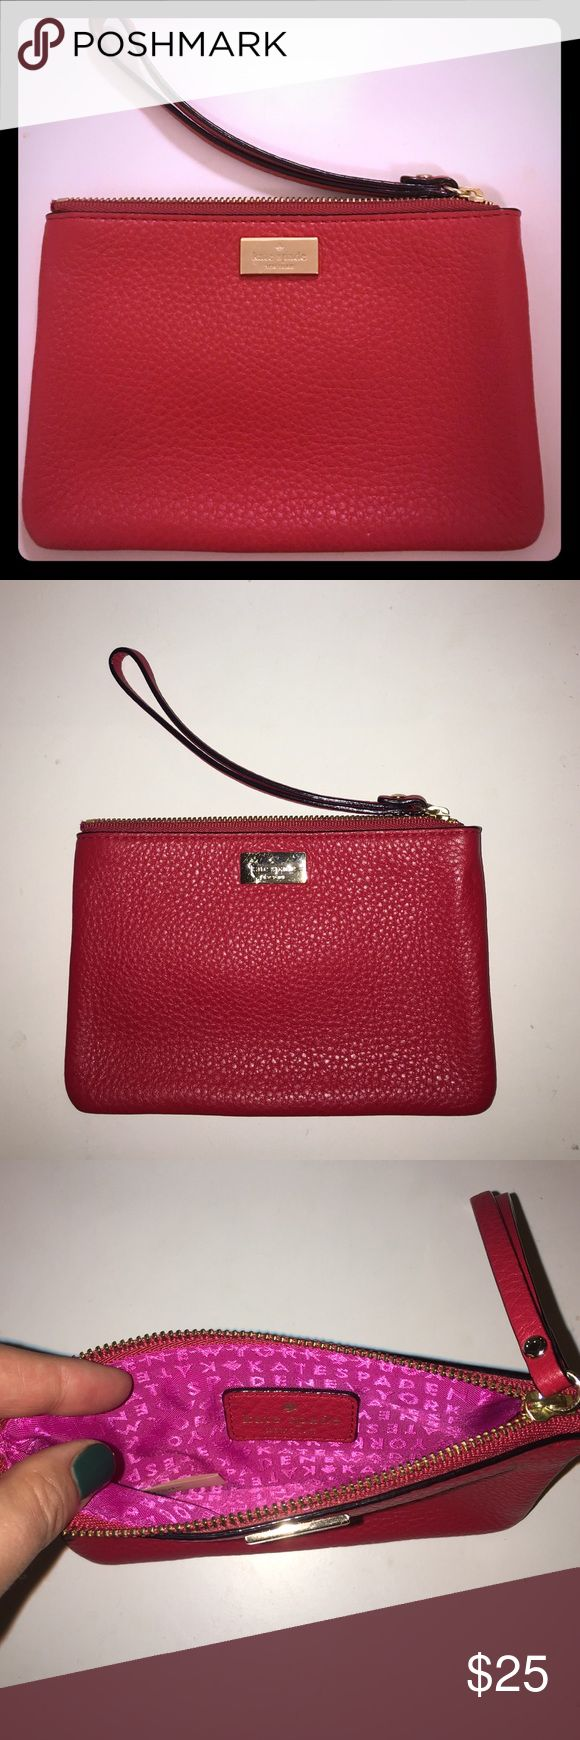 Kate Spade wristlet Small red leather wristlet. Holds any phone except an iPhone plus. Smooth buttery leather. Used once. kate spade Bags Clutches & Wristlets